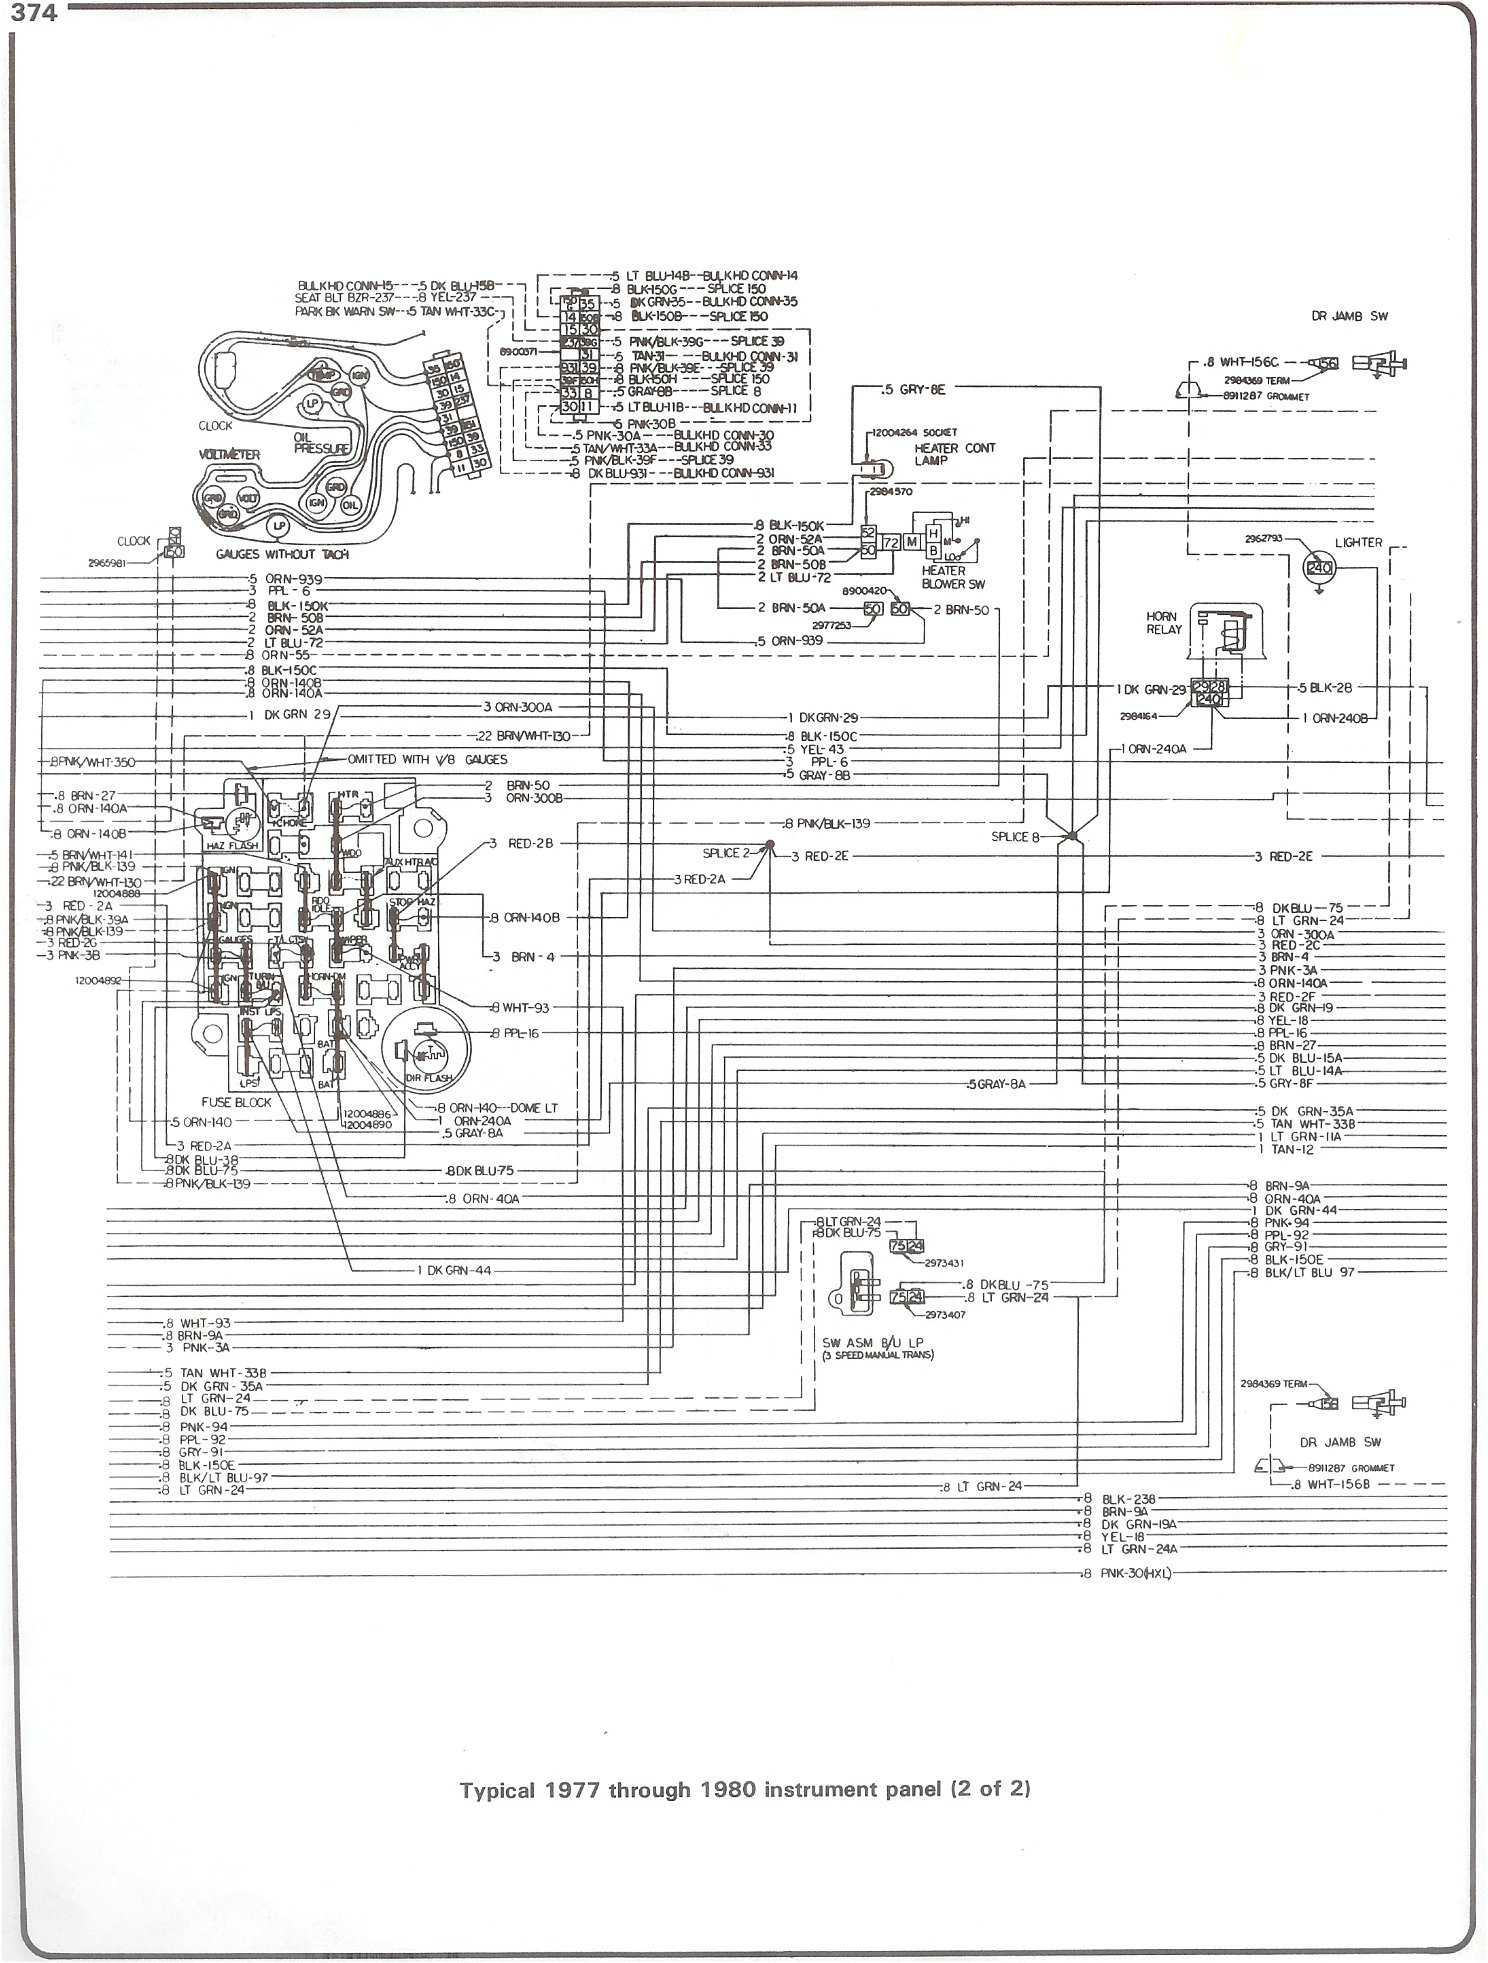 77 80_instrument_pg2 complete 73 87 wiring diagrams Basic Engine Wiring Diagram Chevy at suagrazia.org